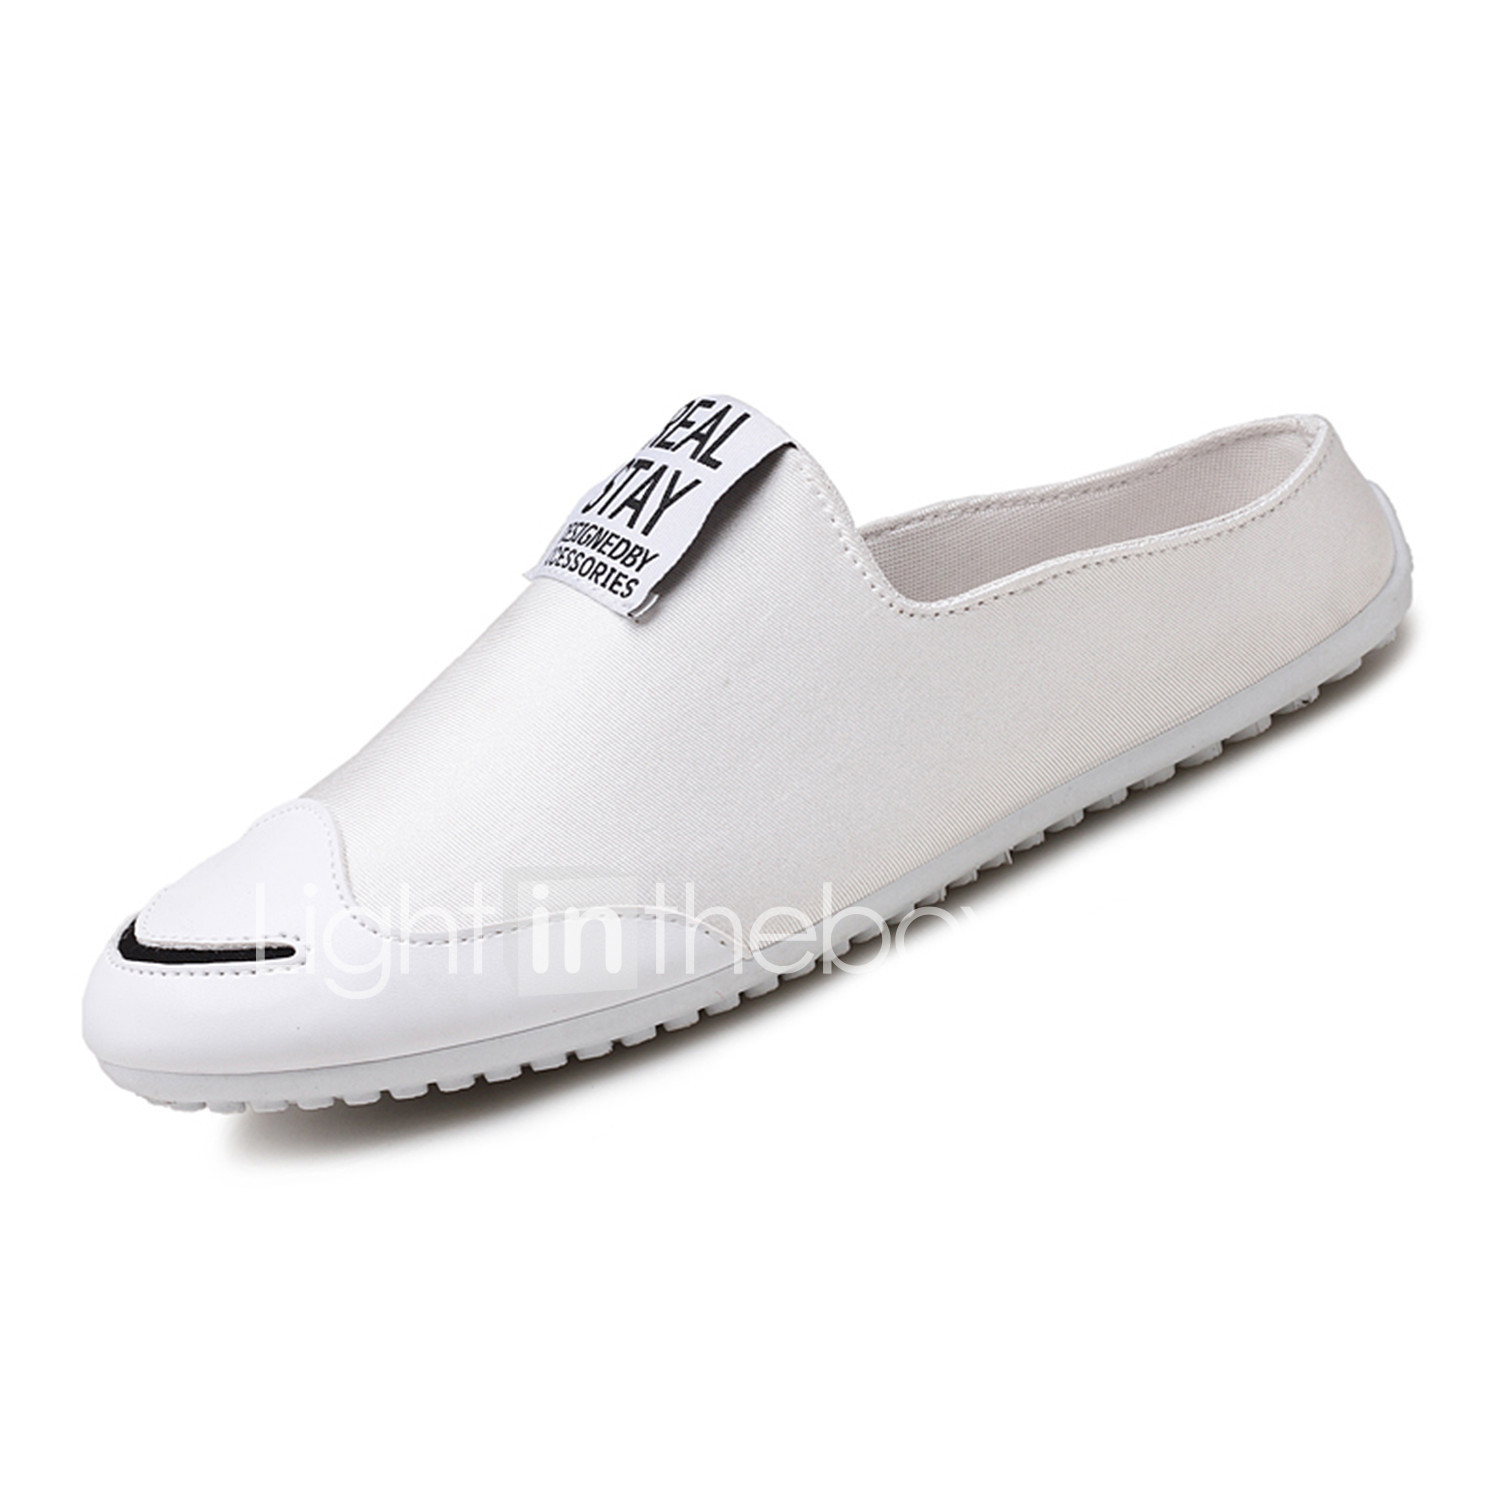 ed2f74a4ce7 Men s Light Soles Fabric Spring   Fall Comfort Clogs   Mules Walking Shoes  White   Black   Red  05998154